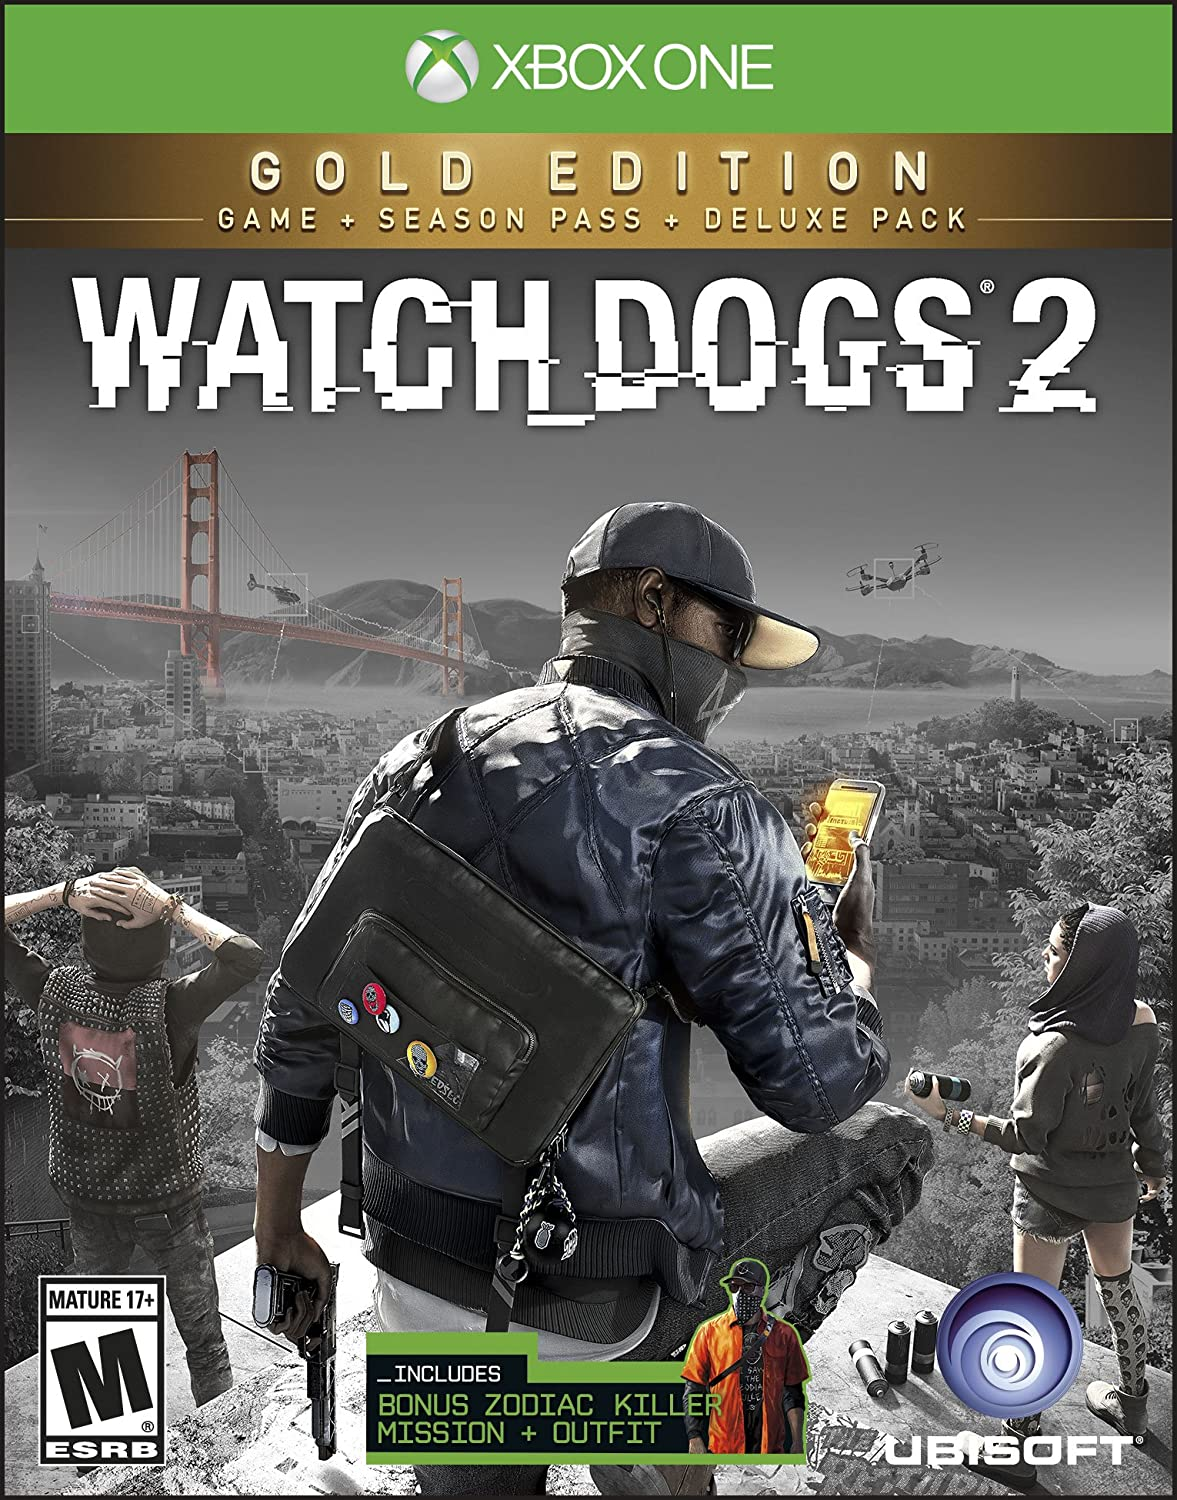 Amazon.com: Watch Dogs 2: Gold Edition (Includes Extra Content + Season  Pass subscription) - Xbox One: Computers & Accessories